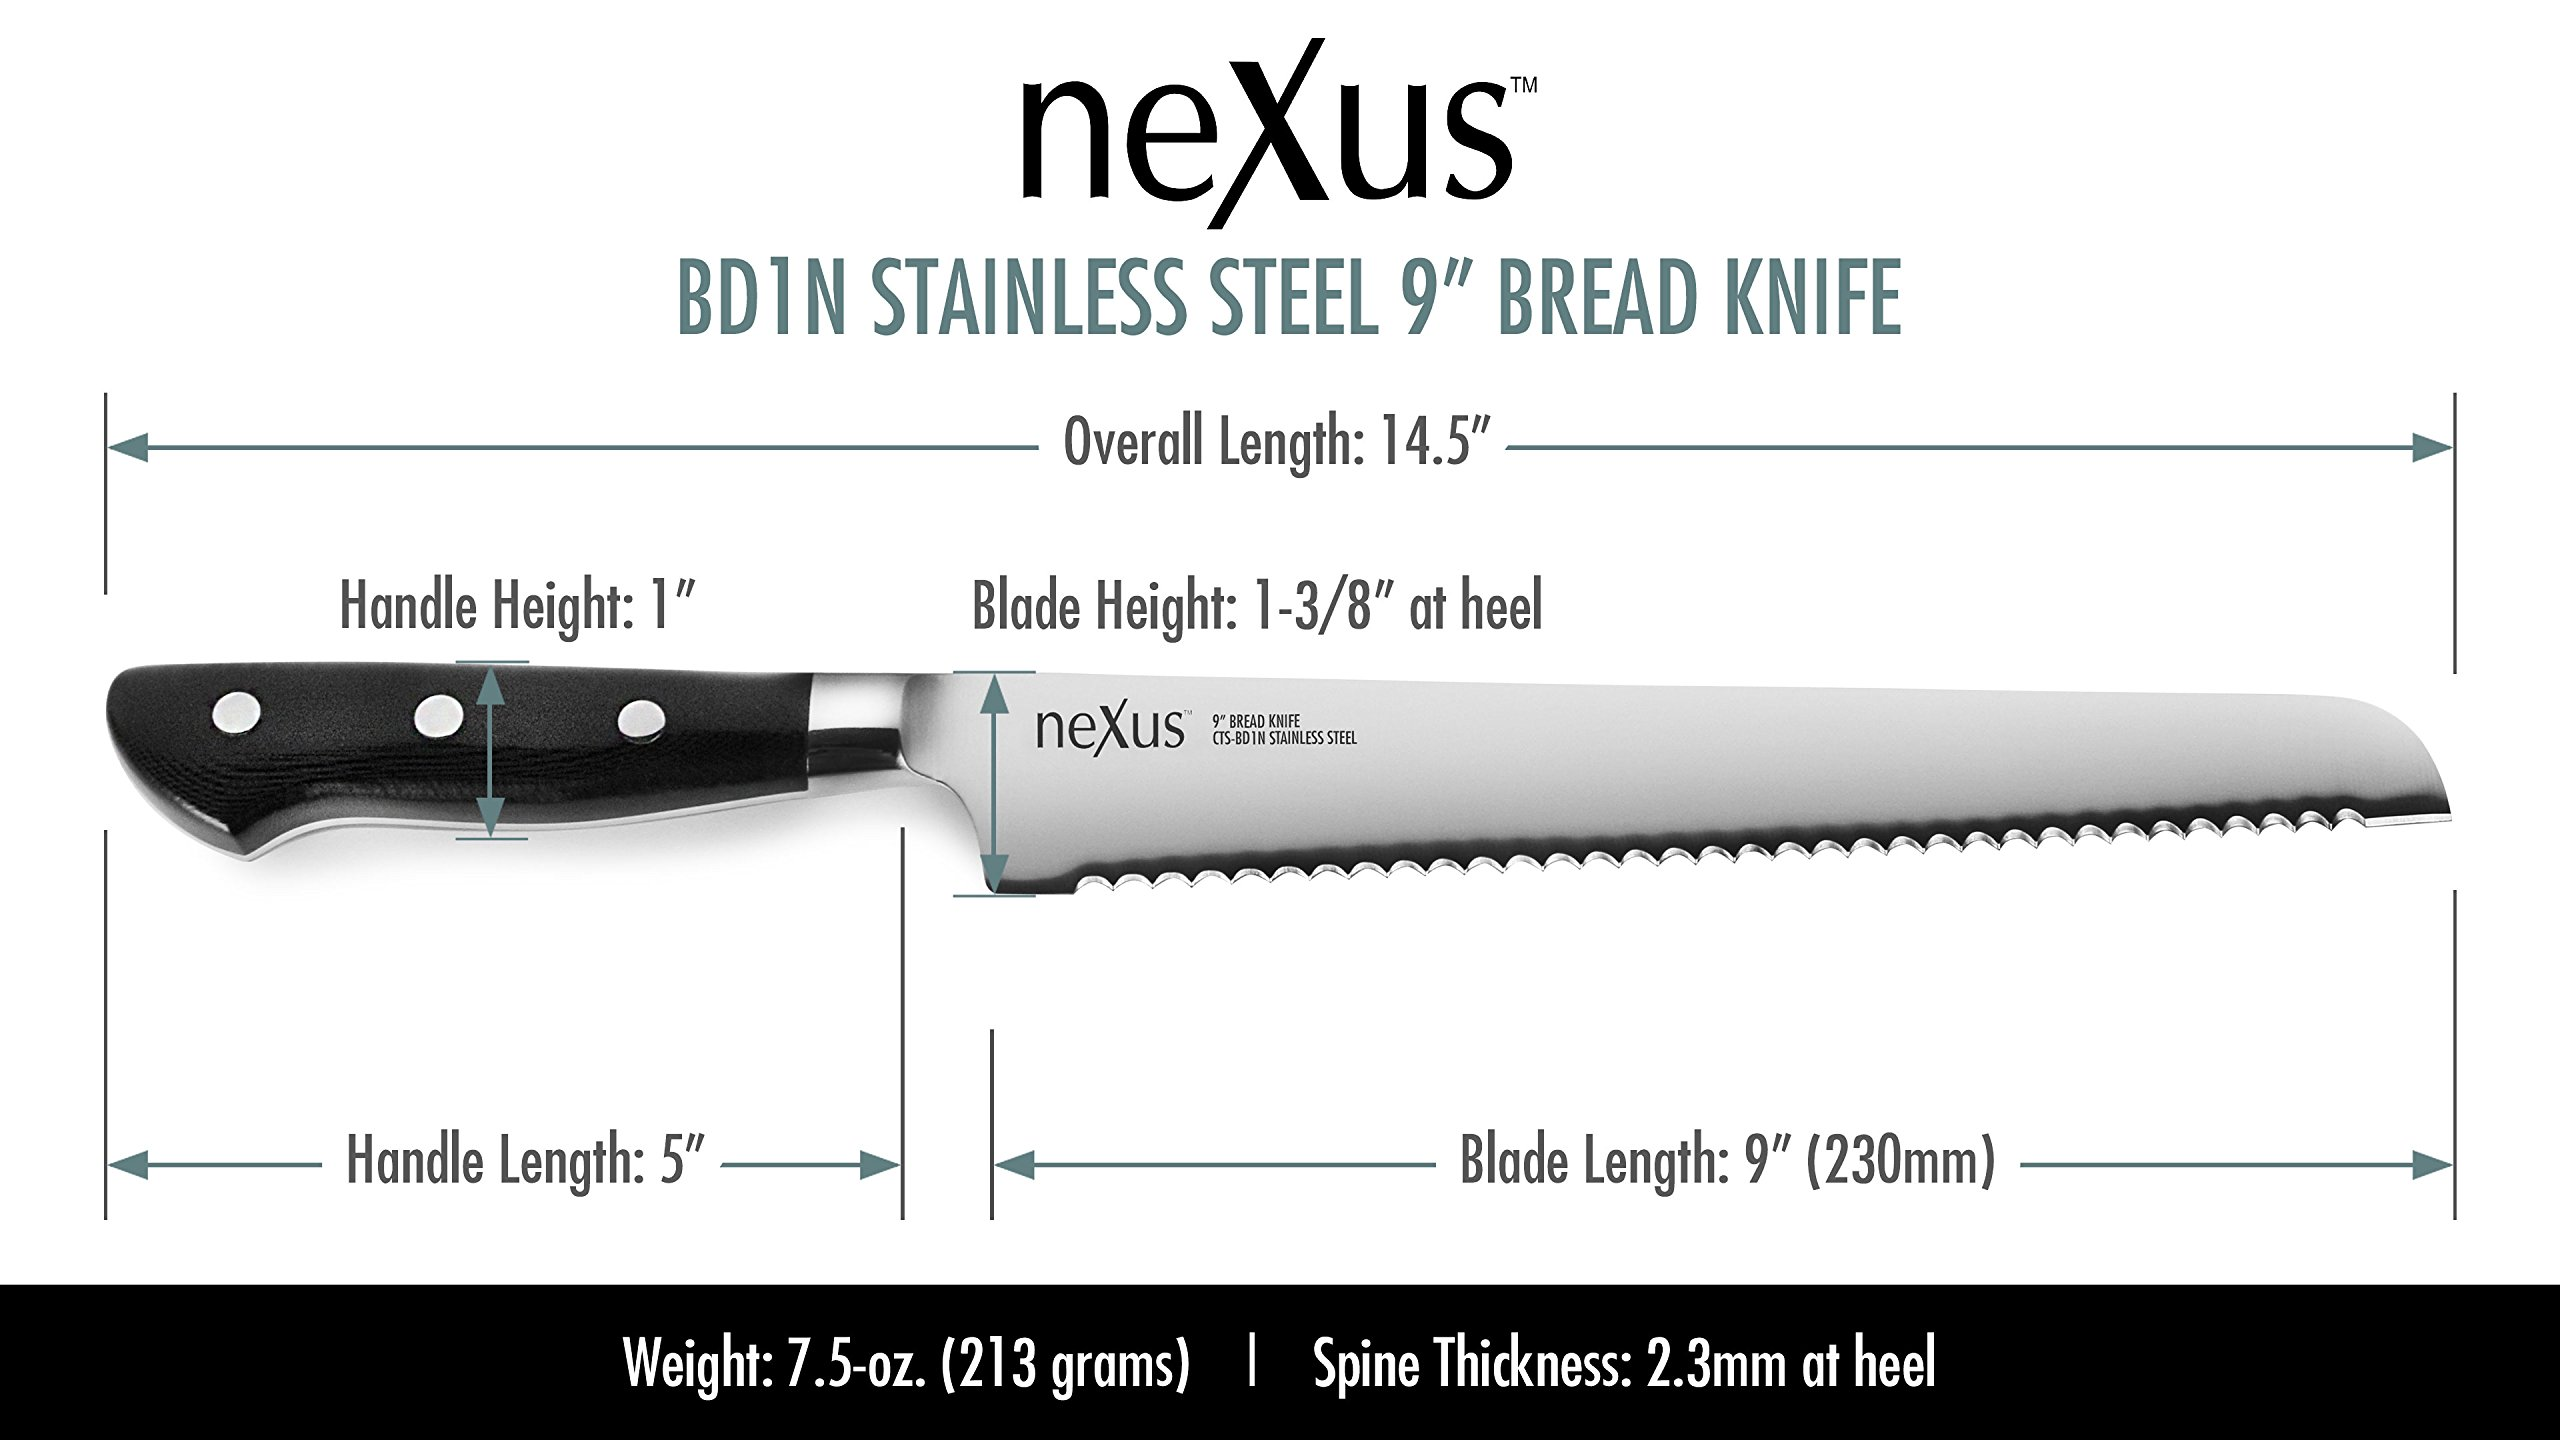 Nexus BD1N 9-inch Bread Knife, 63 Rockwell Hardness, American Stainless Steel with G10 Handle - Serrated Slicing Knife 2 American BD1N Stainless Steel enhanced with Nitrogen allows for high hardness yet a durable edge that will resist chipping and is extremely corrosion resistant; 9-inch blade (14.5-inches overall); Weighs 7.5-ounces (213 grams) 63 Rockwell Hardness for superior edge retention; Pointed serrations make this the perfect knife for crusty loaves of bread; The deep serration edge is designed to last for decades of use Indestructible G10 handle with stainless steel rivets; Full tang construction